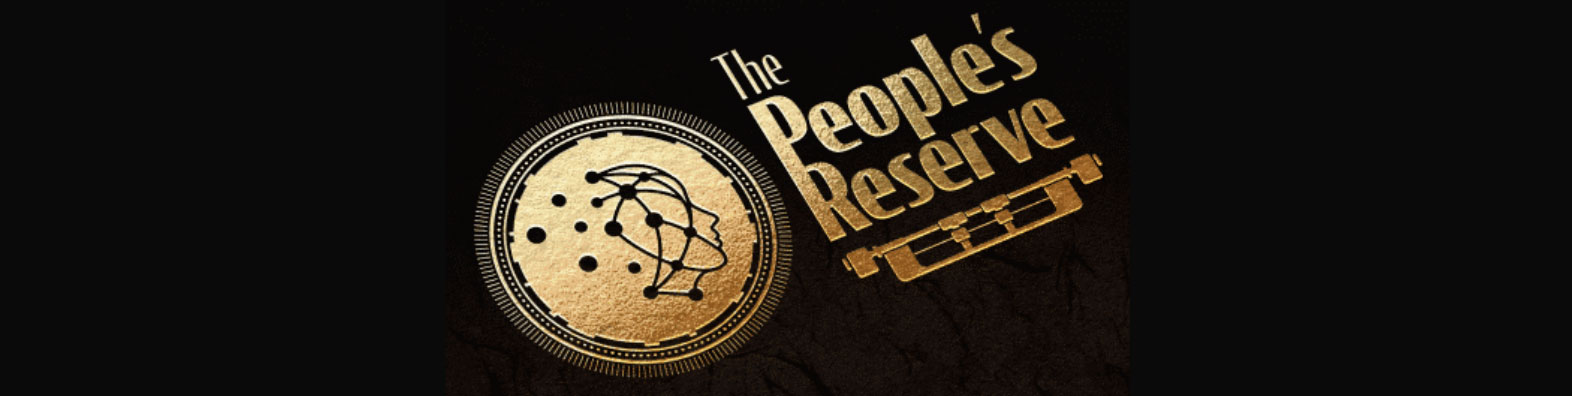 The Peoples Reserve